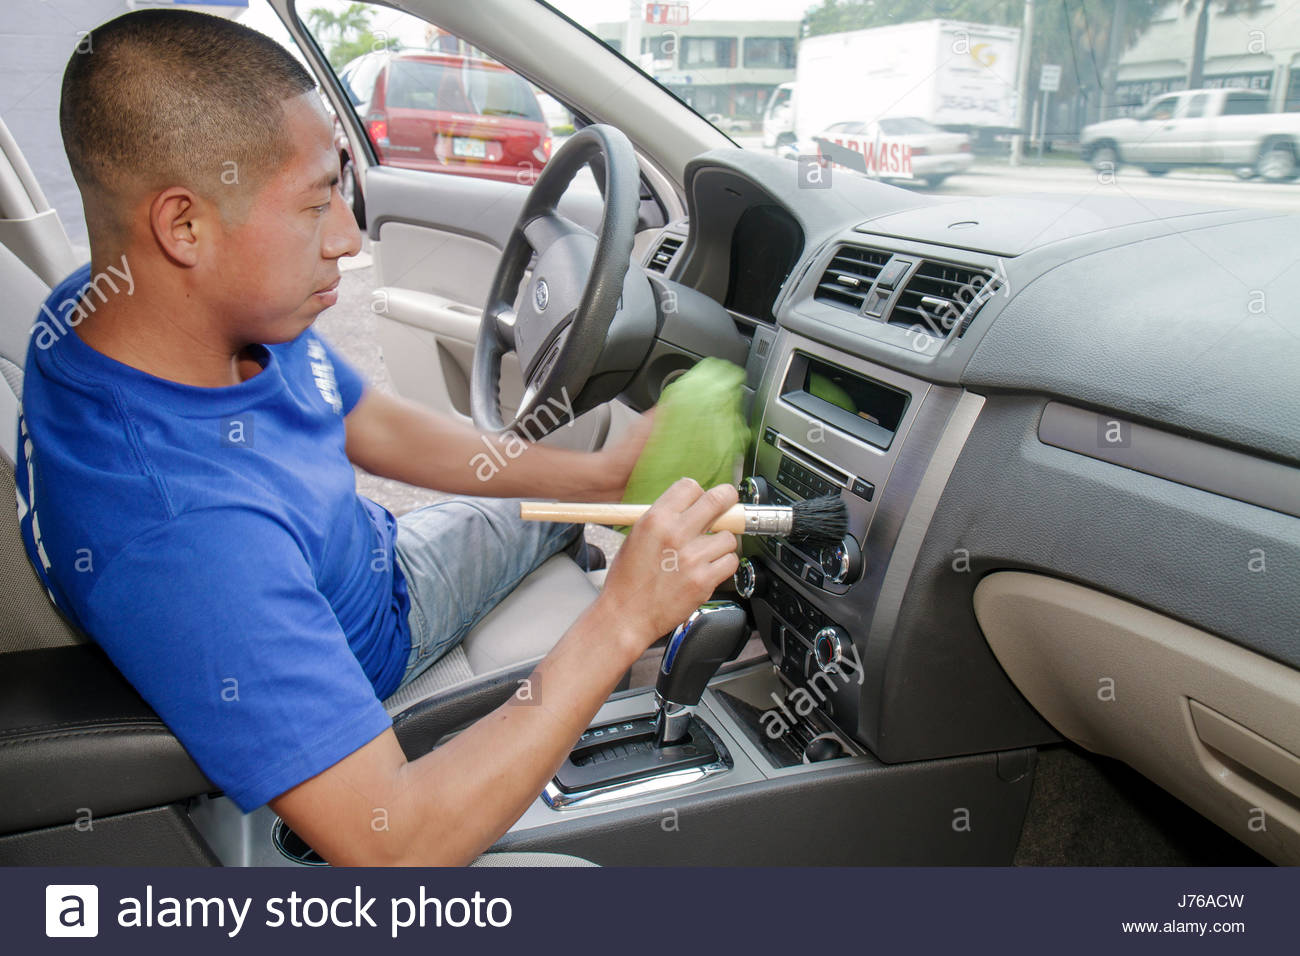 Miami Florida Car Wash Hispanic Man Cleaning Car Automobile Vehicle Work  Working Job Interior Dashboard